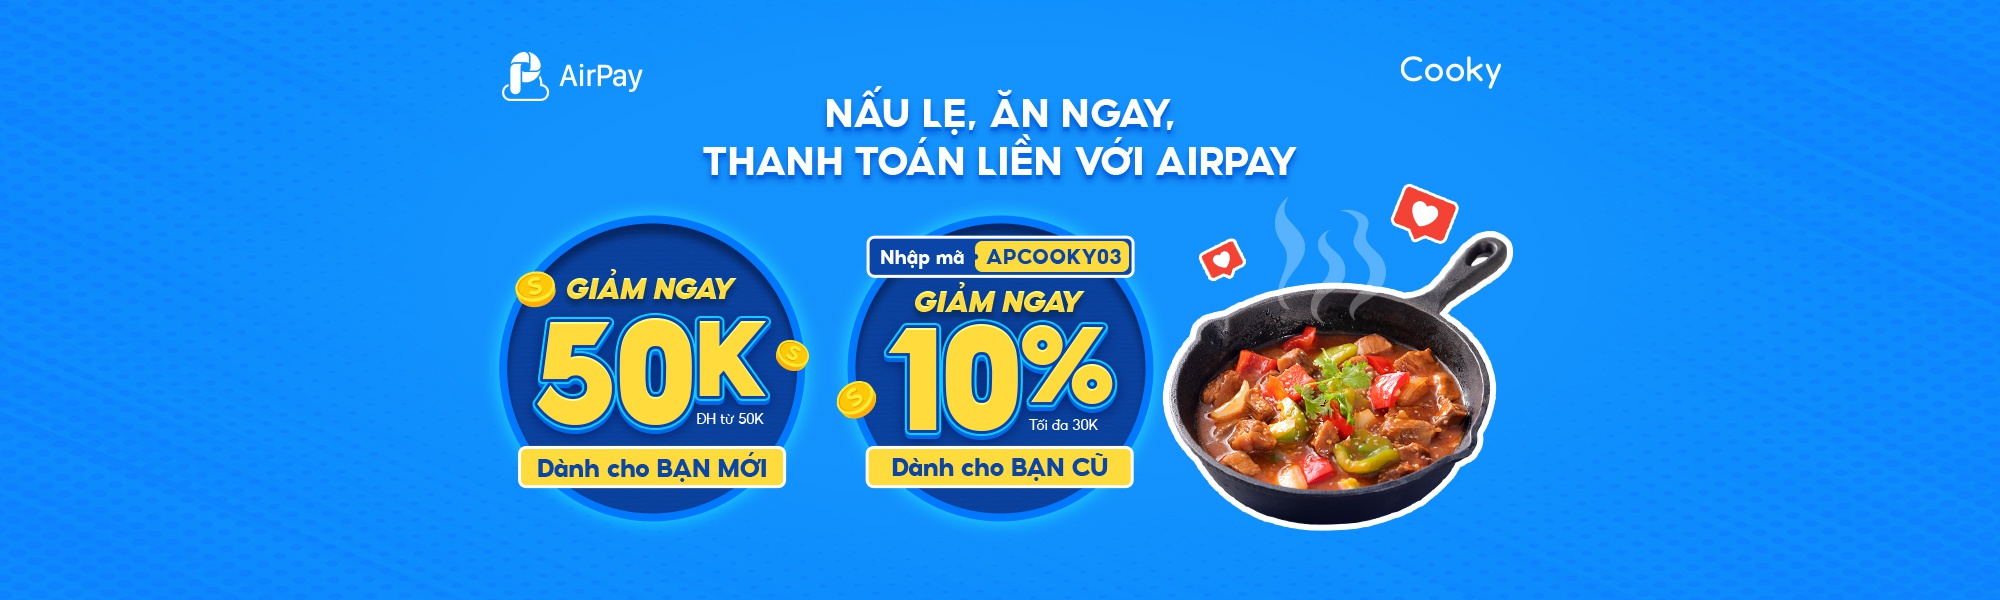 AirPay-Cooky-promotion